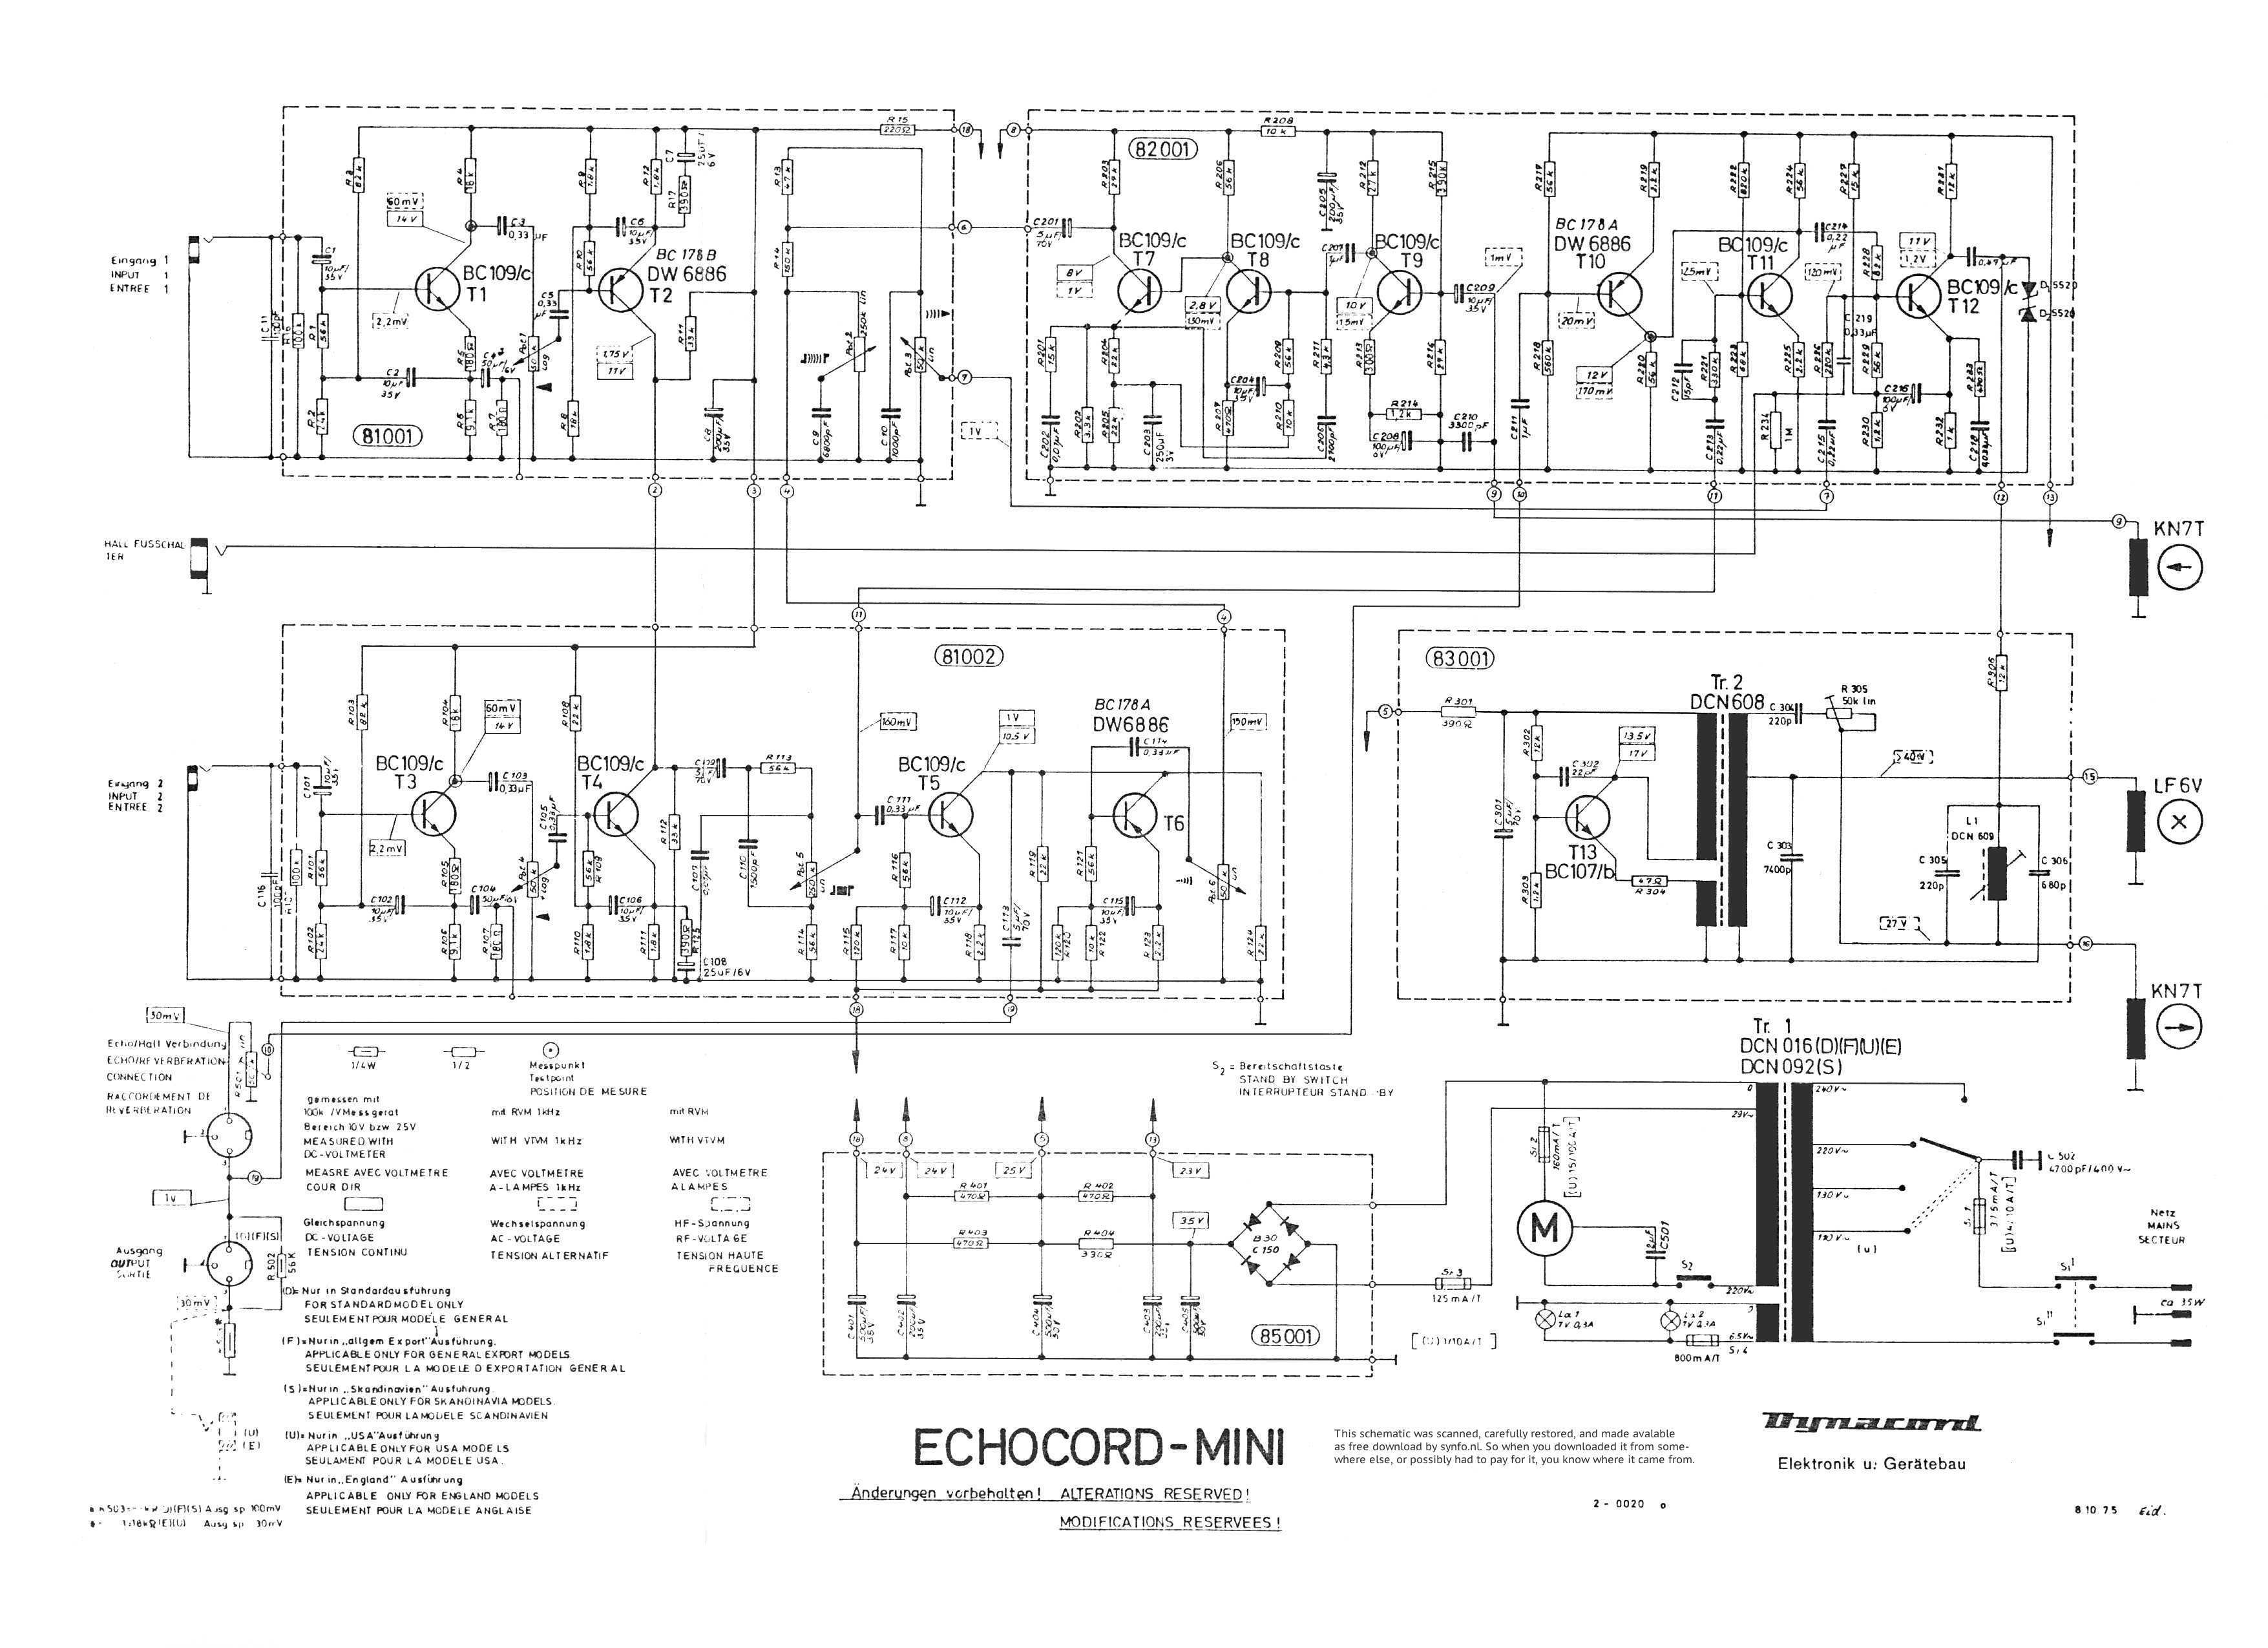 Synthesizer Service Manuals Free Download Ultrasonic Circuit Schematic Wiring Diagram